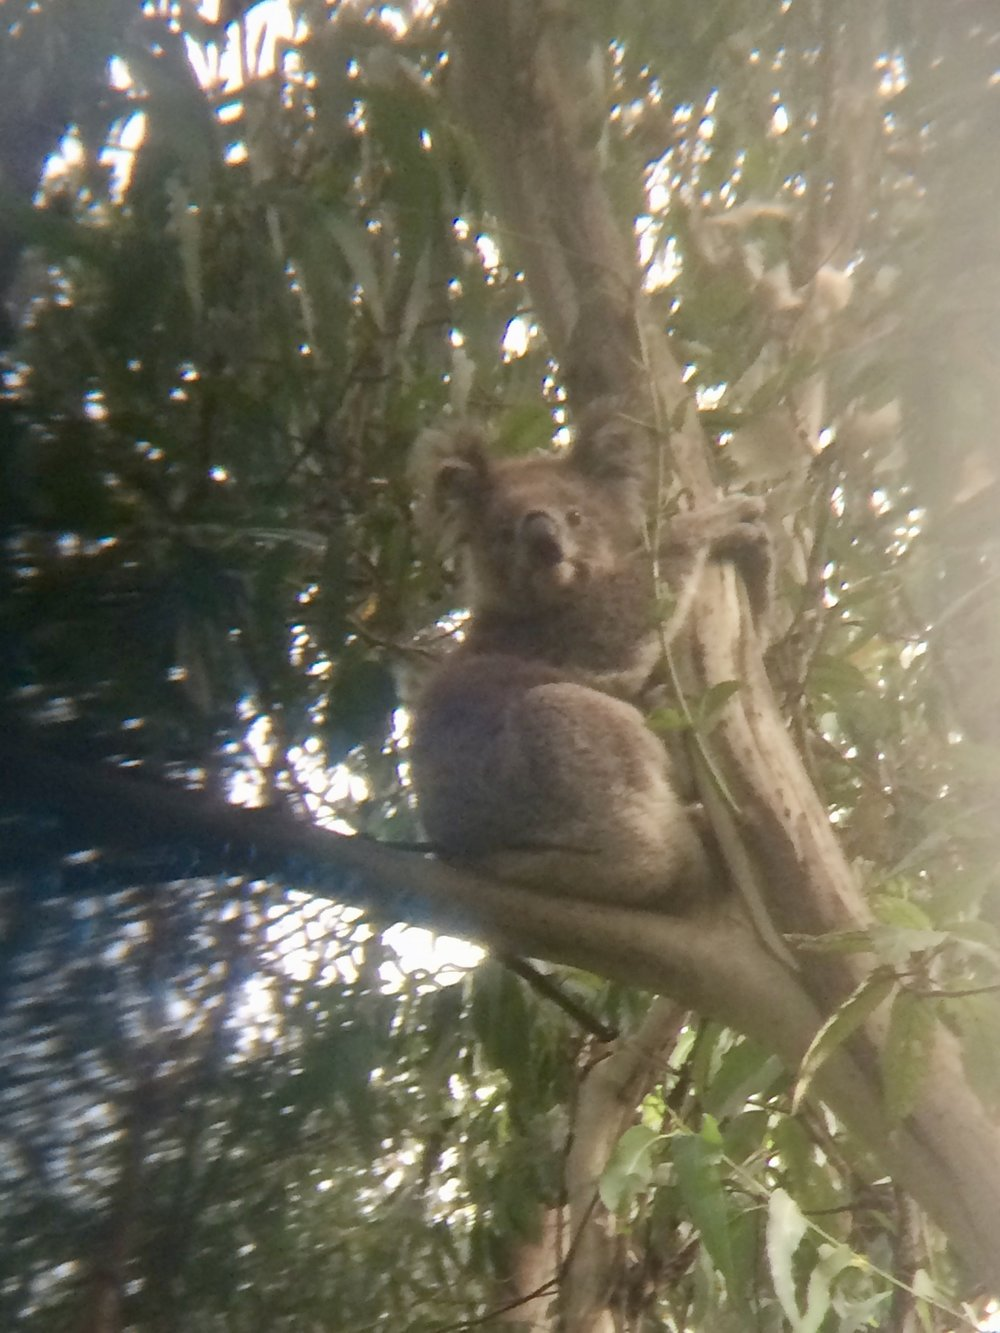 A great koala spotting in Otway - a cute and very awake koala! (photo taken through binoculars).